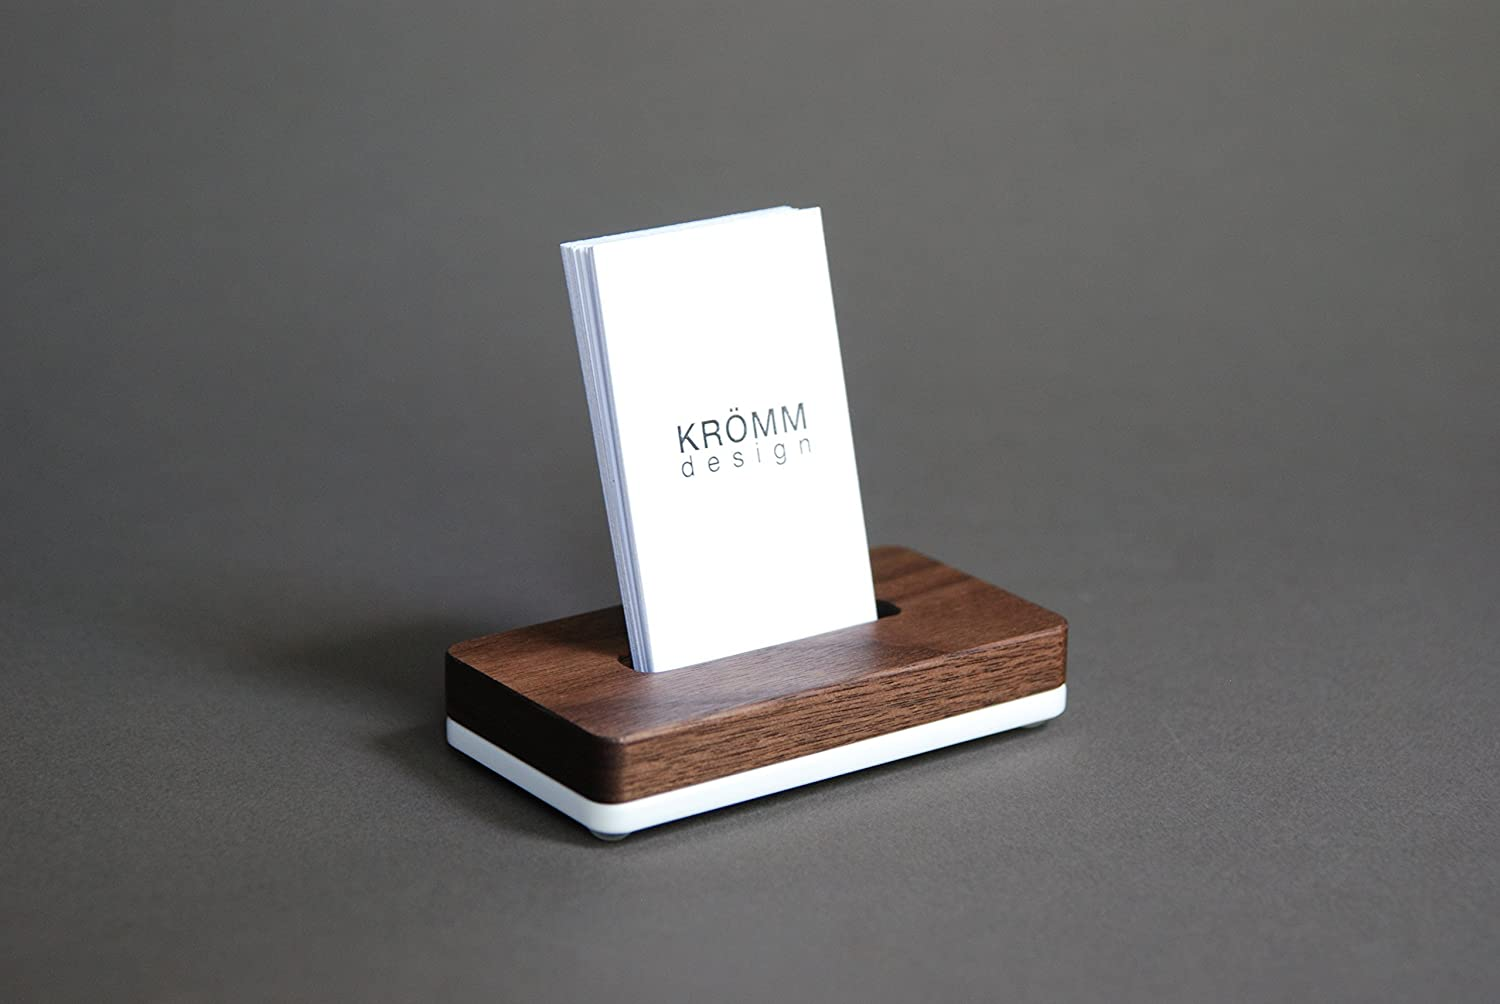 Vertical MOO Business Card Stand, Vertical Business Card Holder, Business Card Display for Vertical Business Cards, in Walnut Wood and White Acrylic